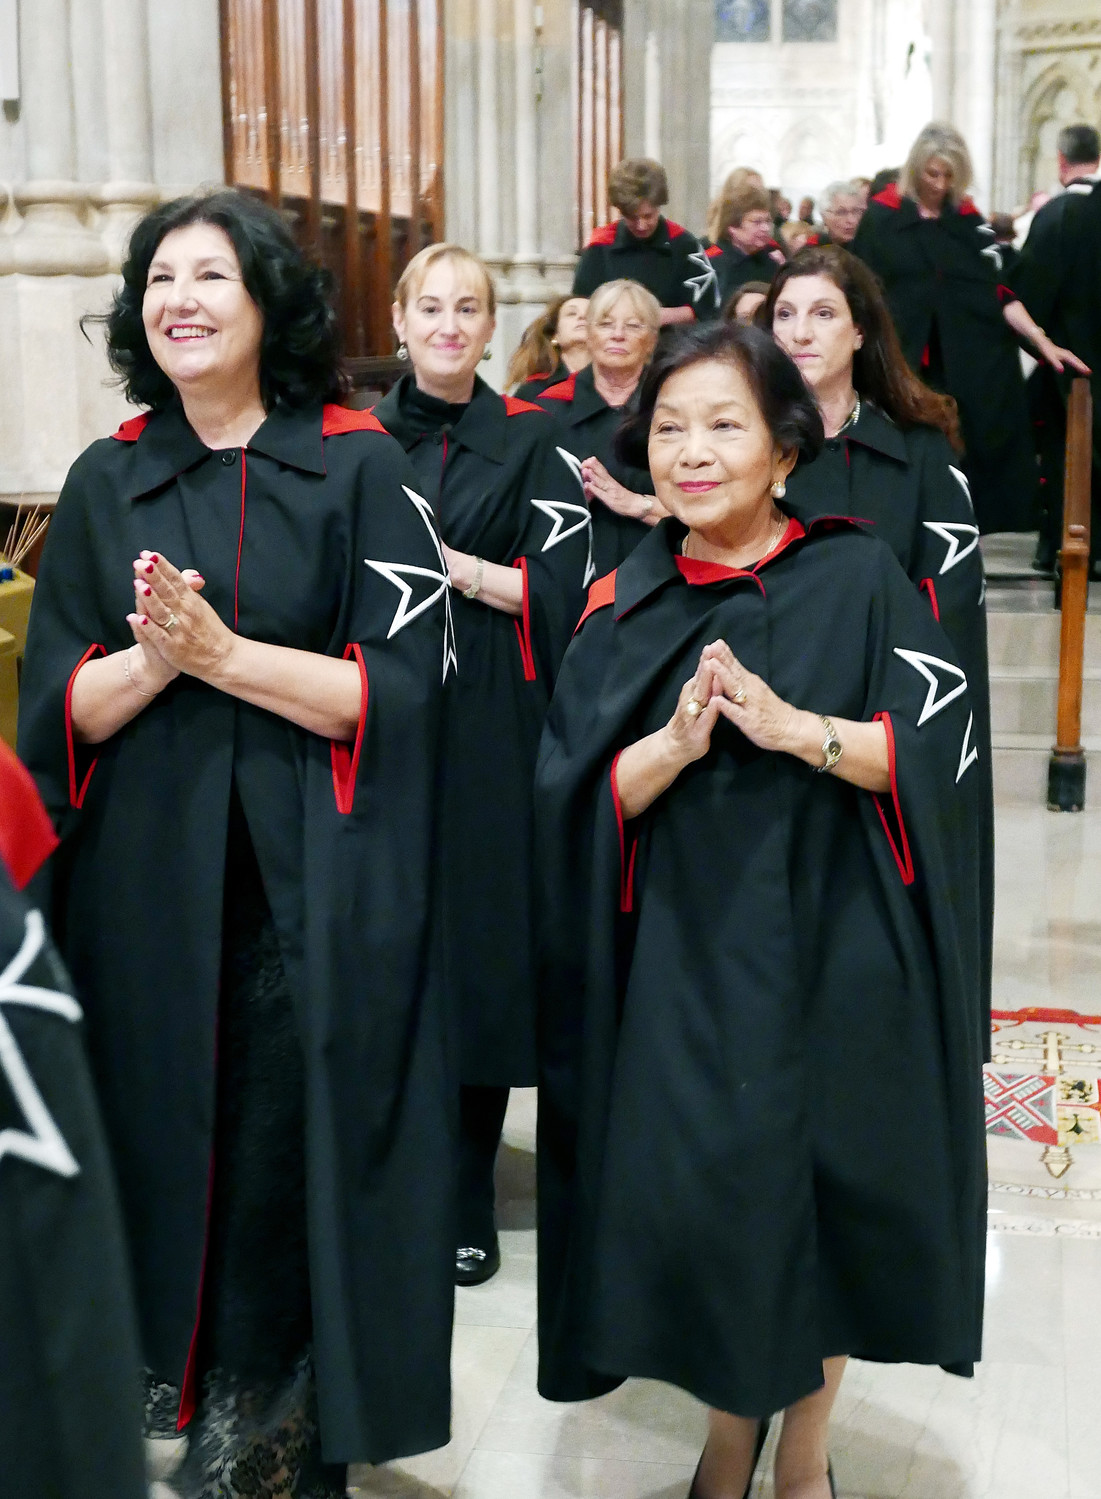 Dames of Malta process in the cathedral.